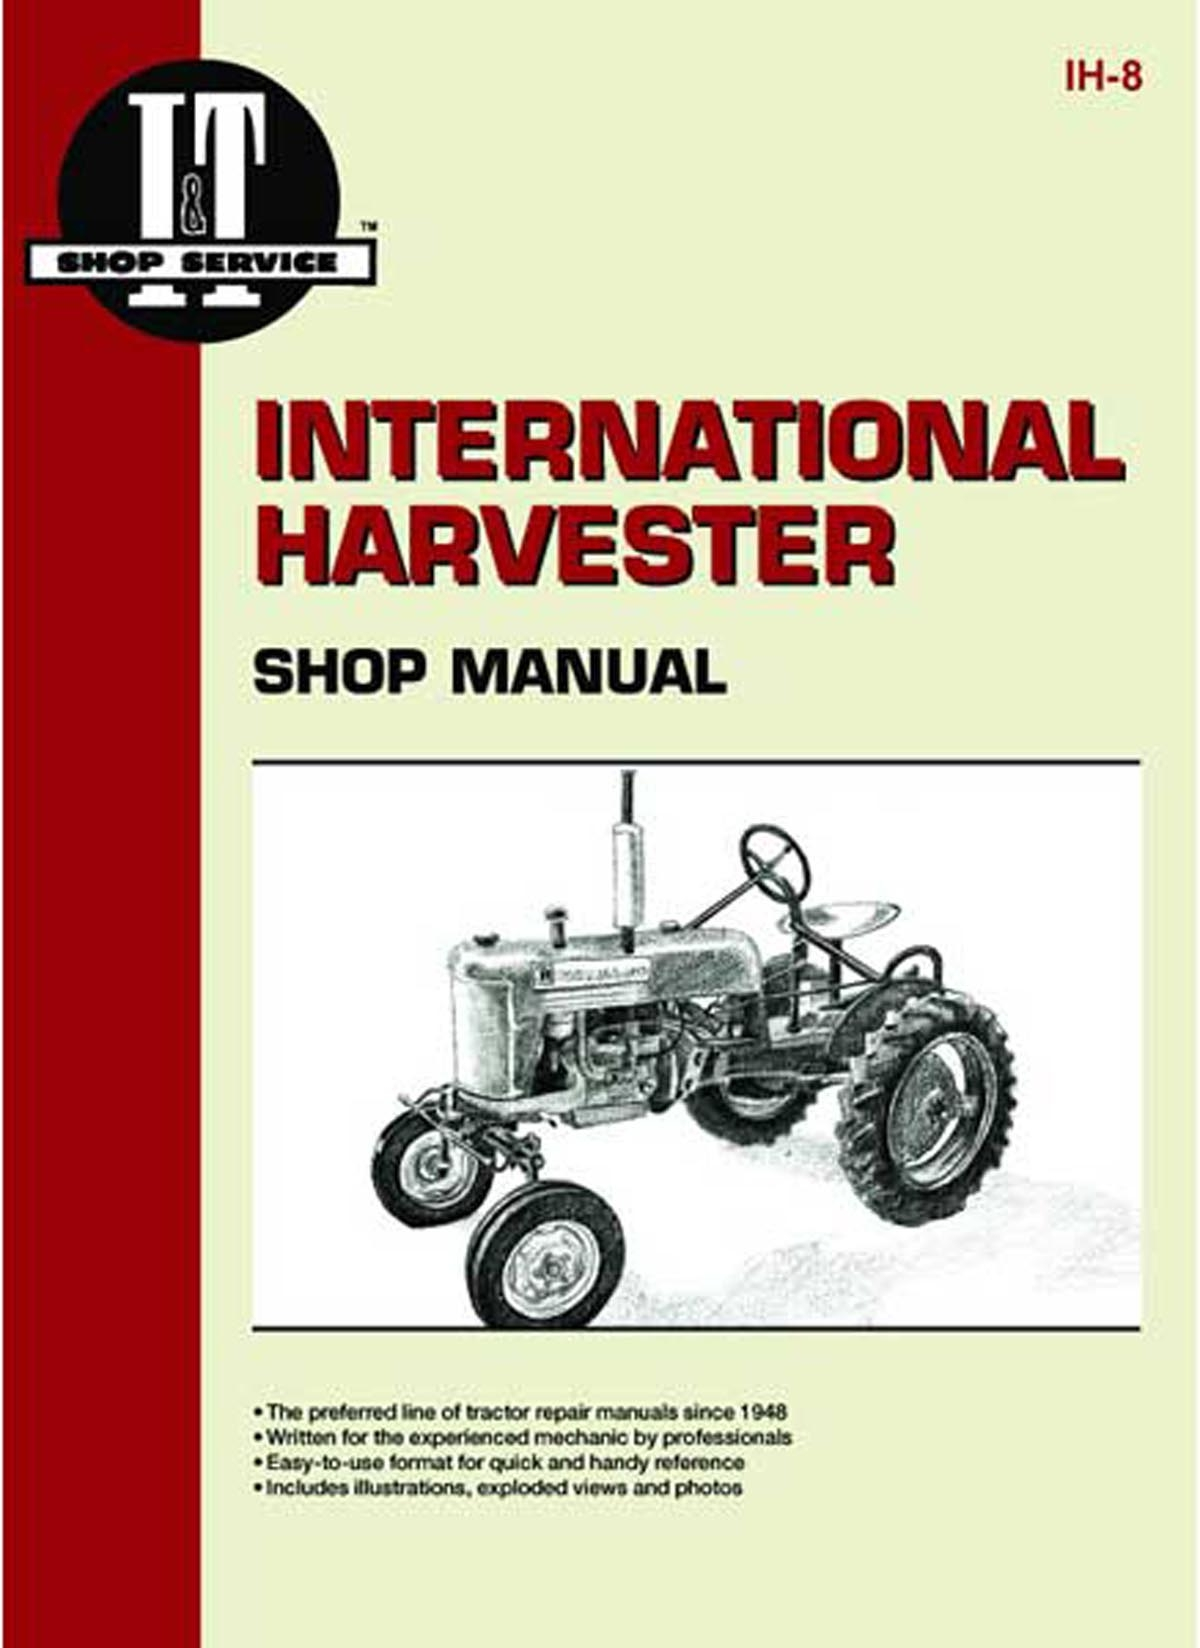 IH8 i & t shop service manual farmall a, b, c, cub, h, m, m ta, md farmall super c wiring harness at honlapkeszites.co